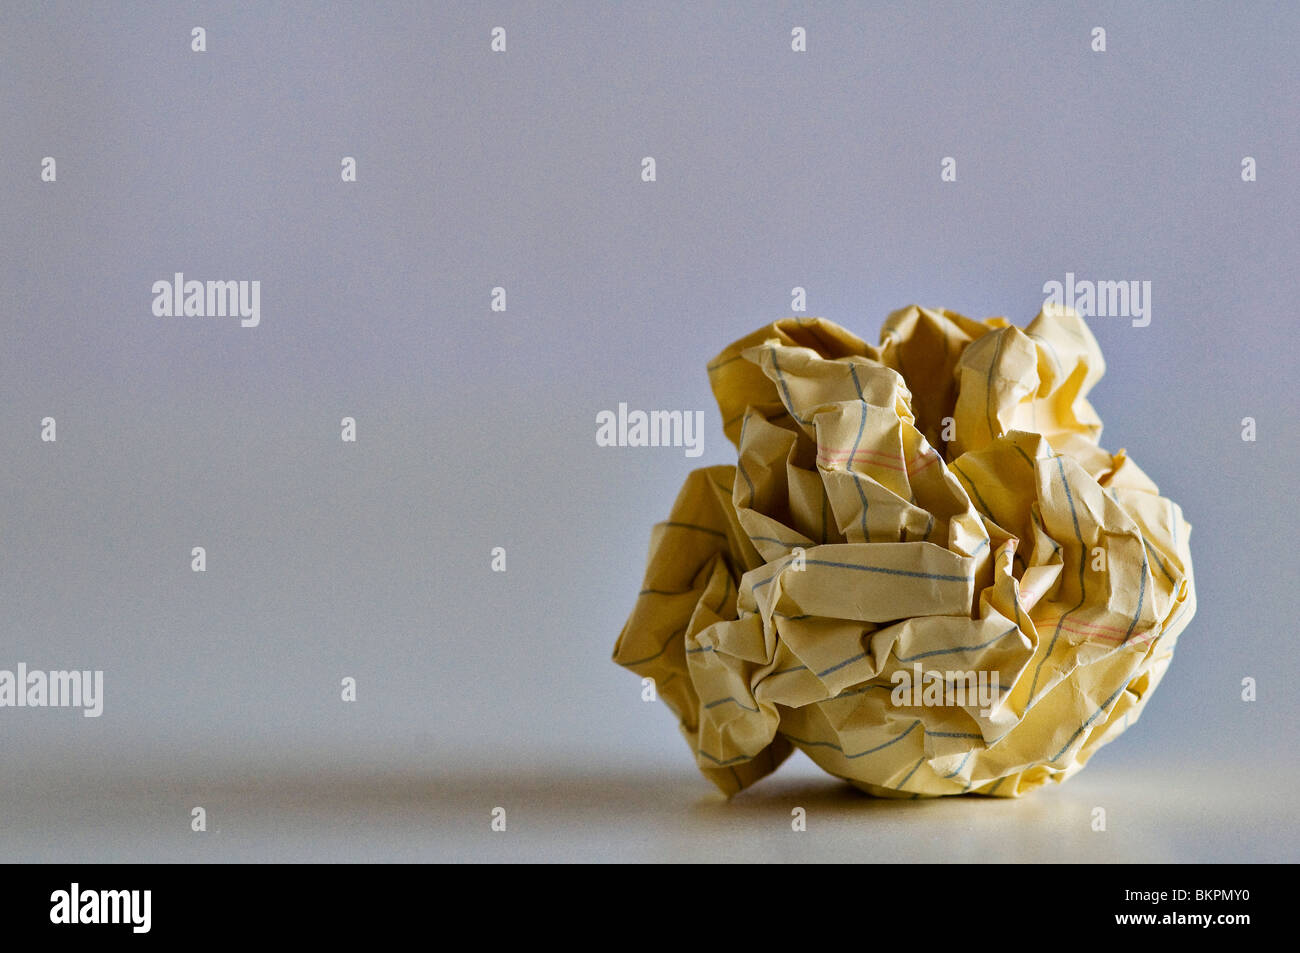 Crumpled yellow paper ball of failed ideas. - Stock Image